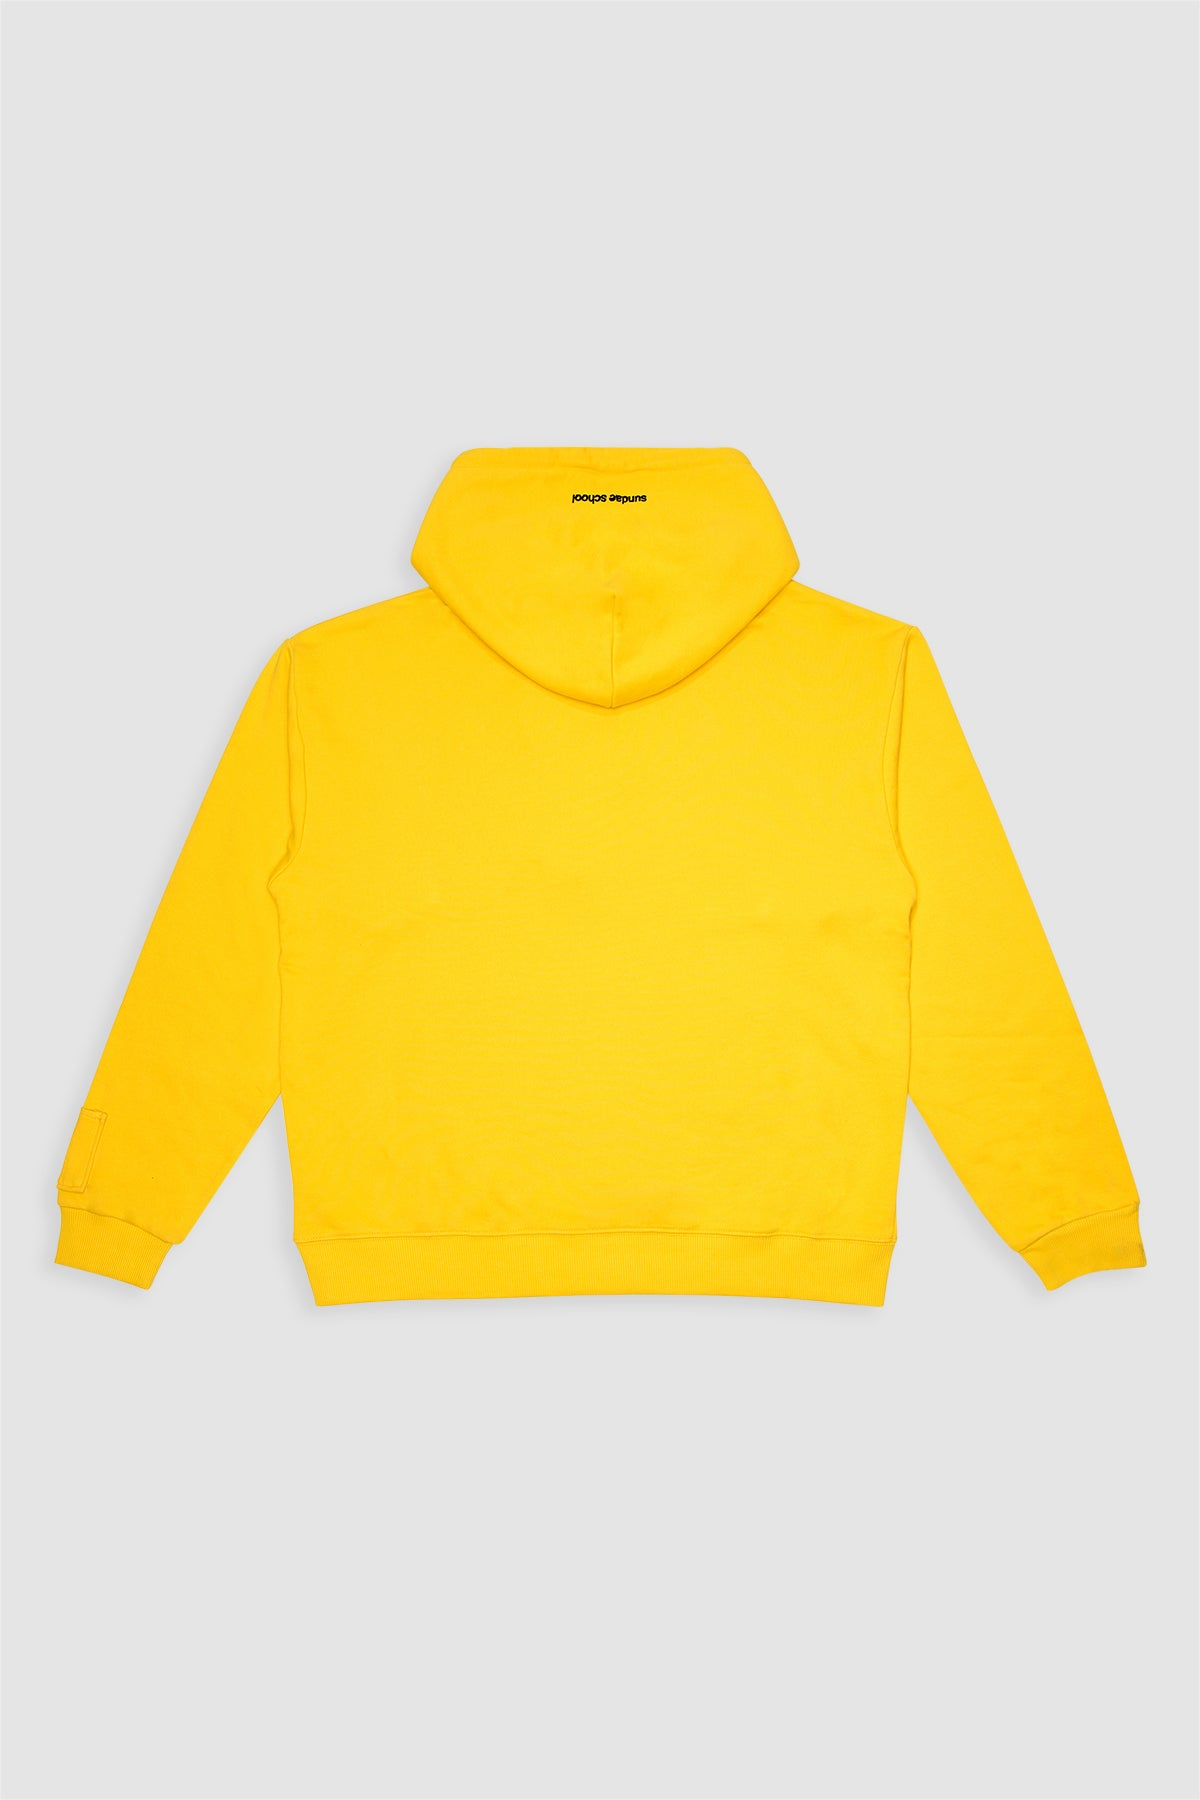 Well Smoked Hoodie / Yellow